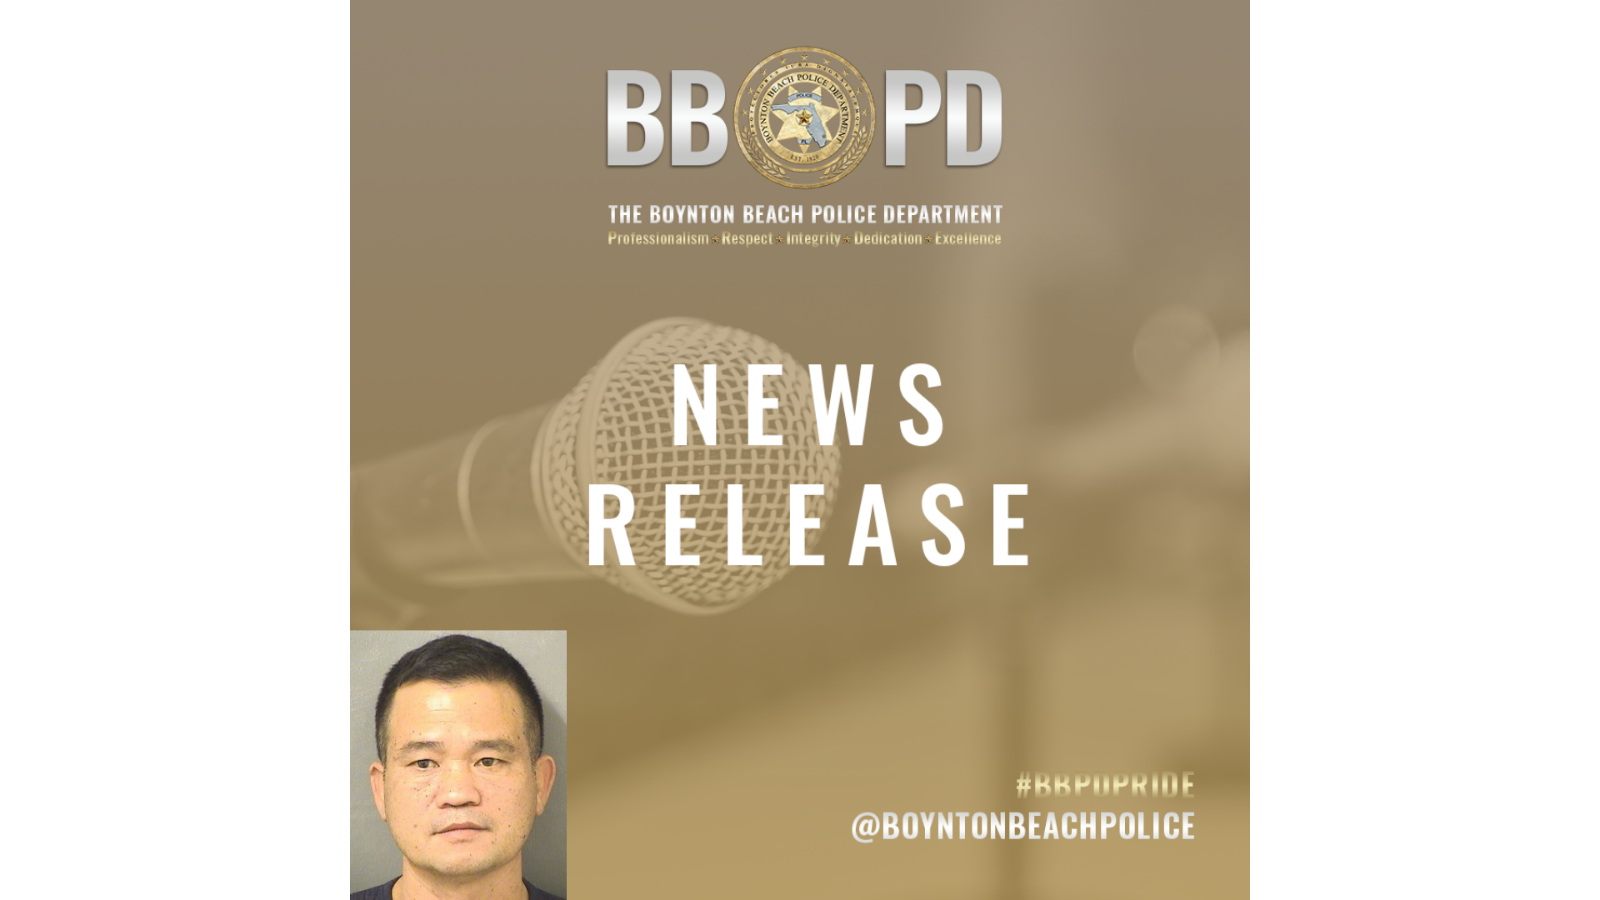 Announcement of news release with photo of Qui Vanh Voong in bottom left corner